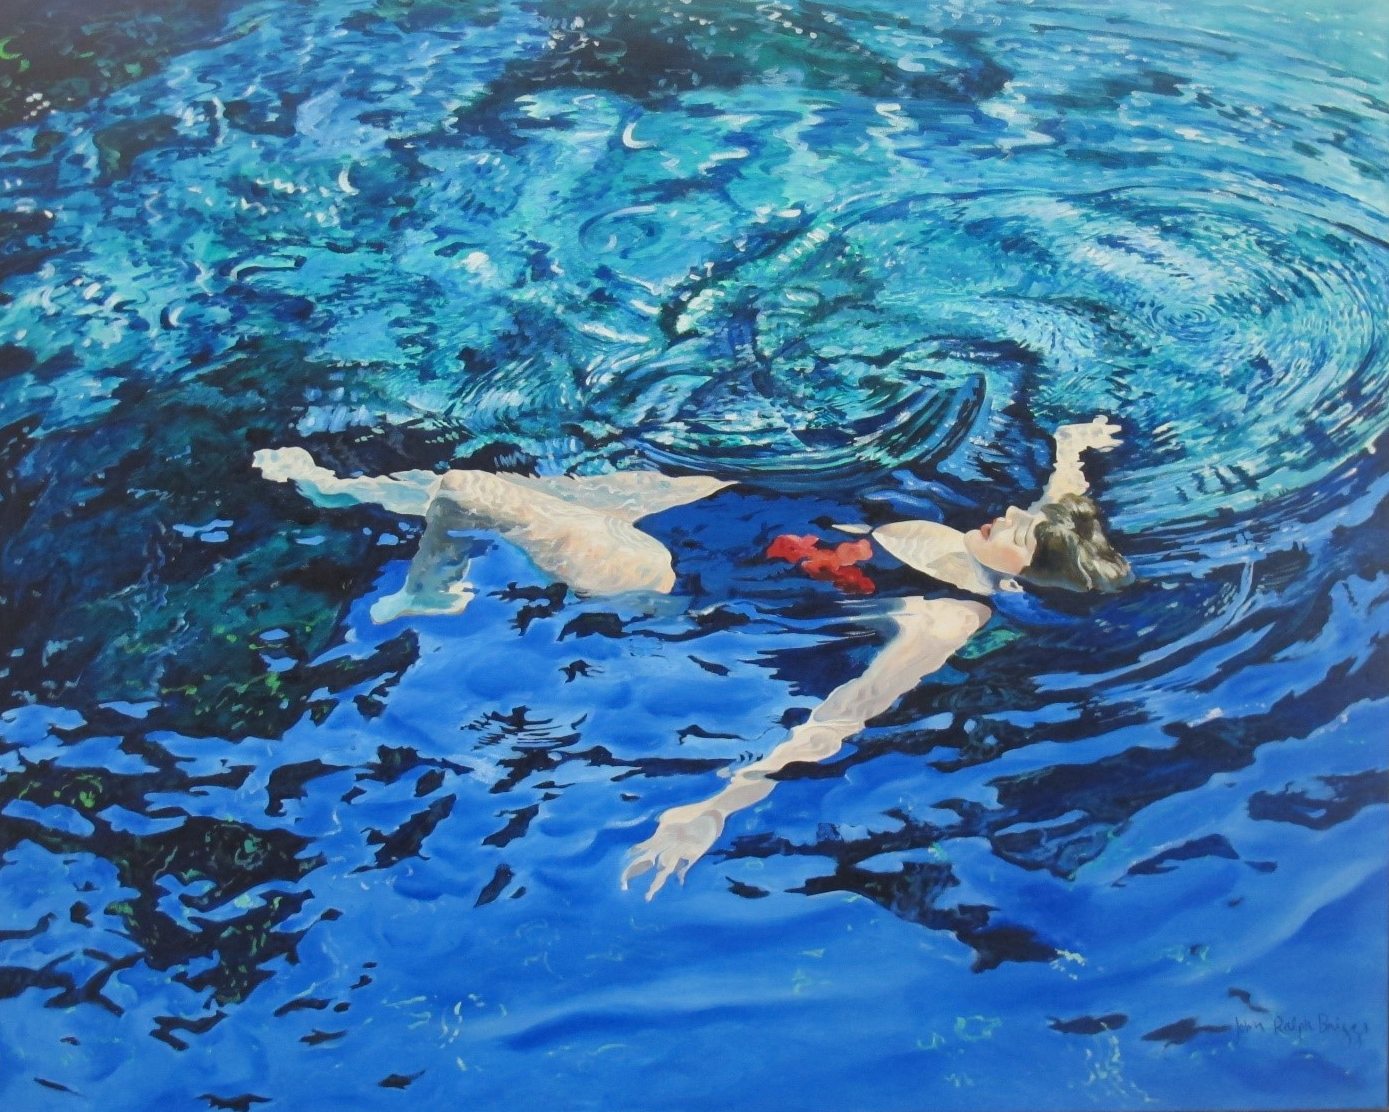 John Briggs,  Swimmer #7 , 1982, Oil on Canvas, 48 x 60 inches.